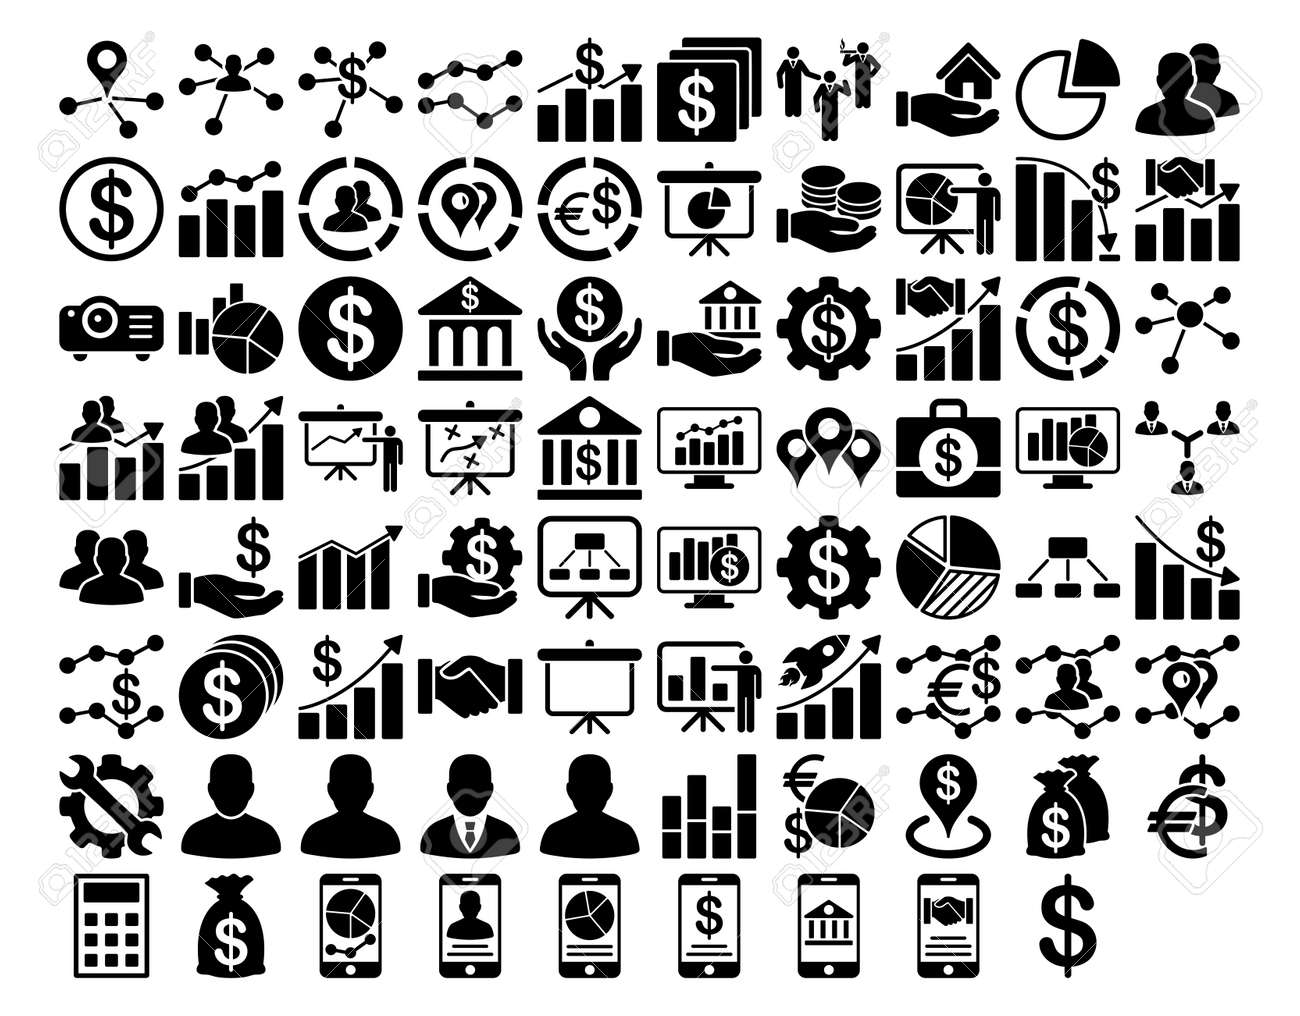 Business Icon Set  These flat icons use black color  Vector images